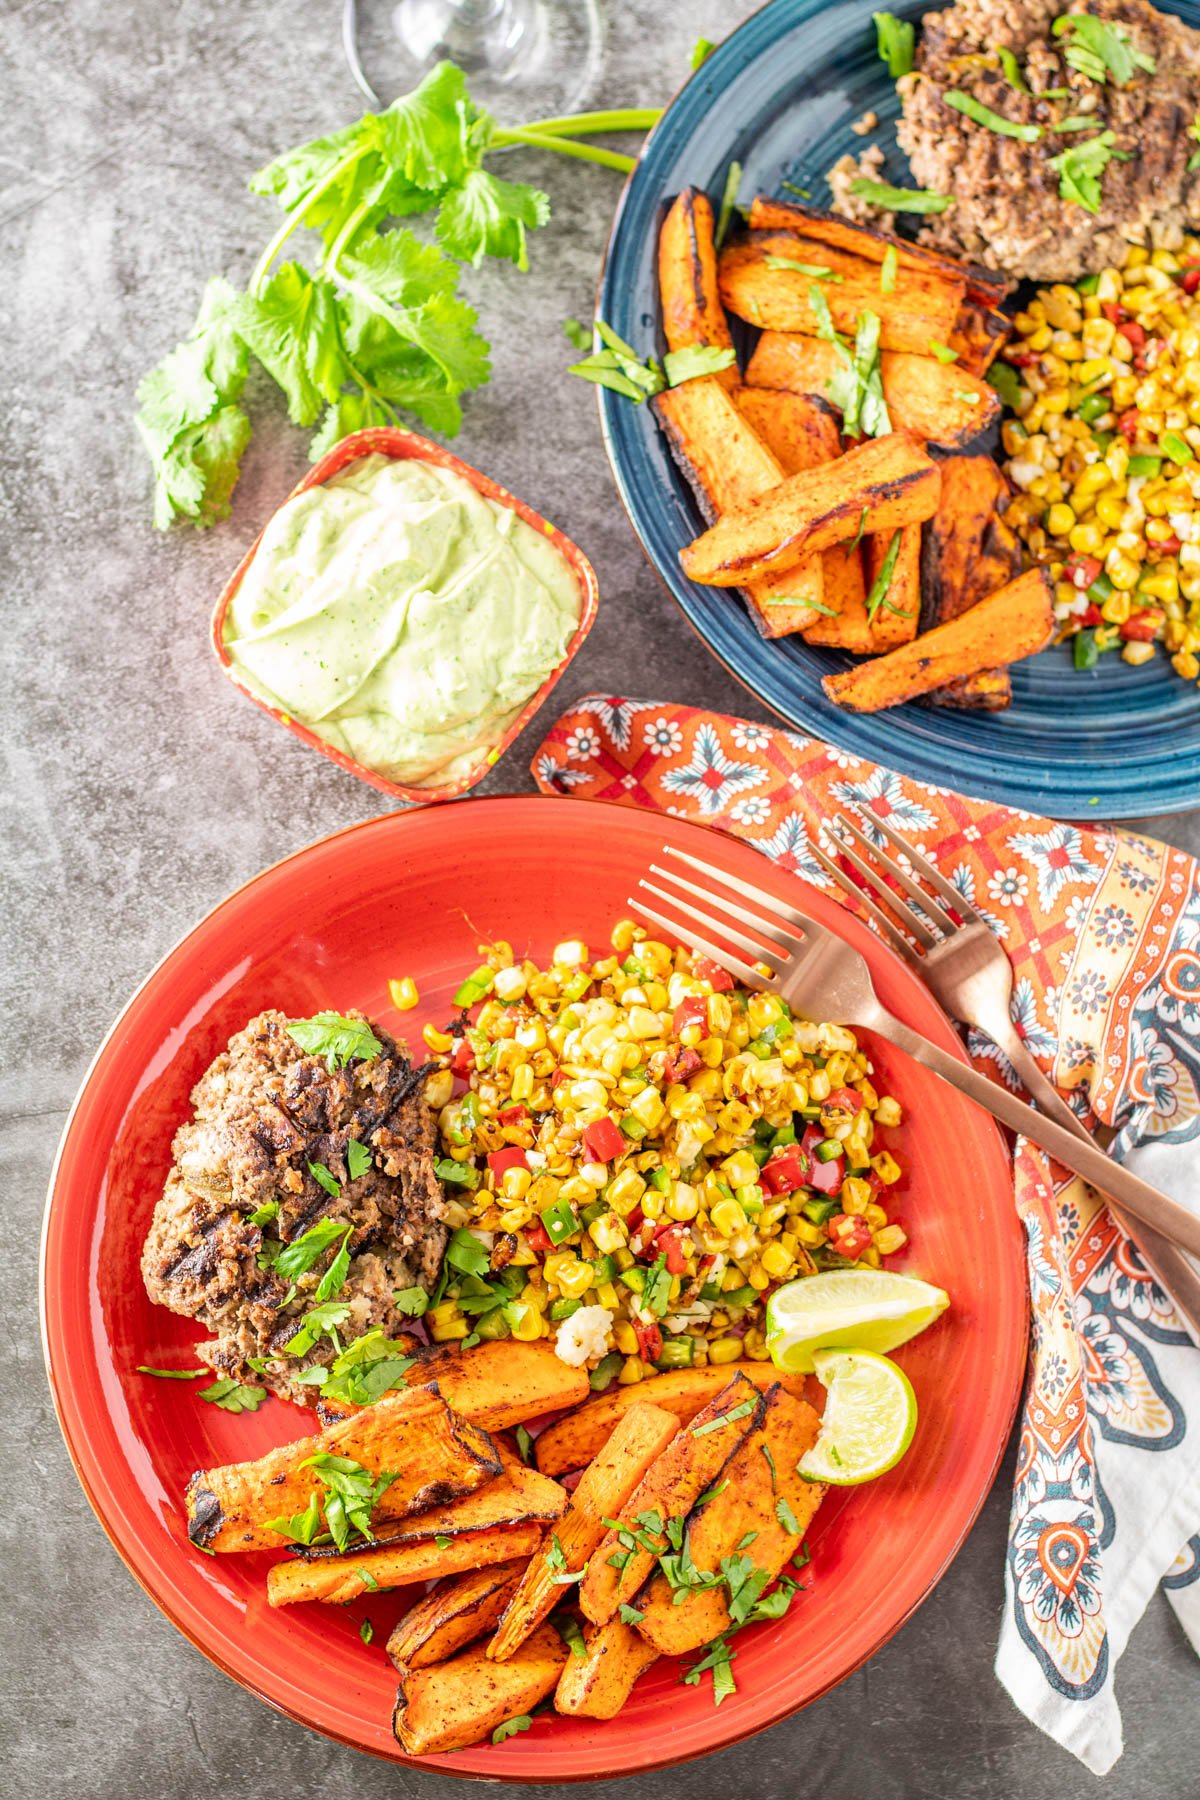 2 plates with sweet potato wedges, charred sweet corn, and bison patties, alongside a bowl of avocado crema.